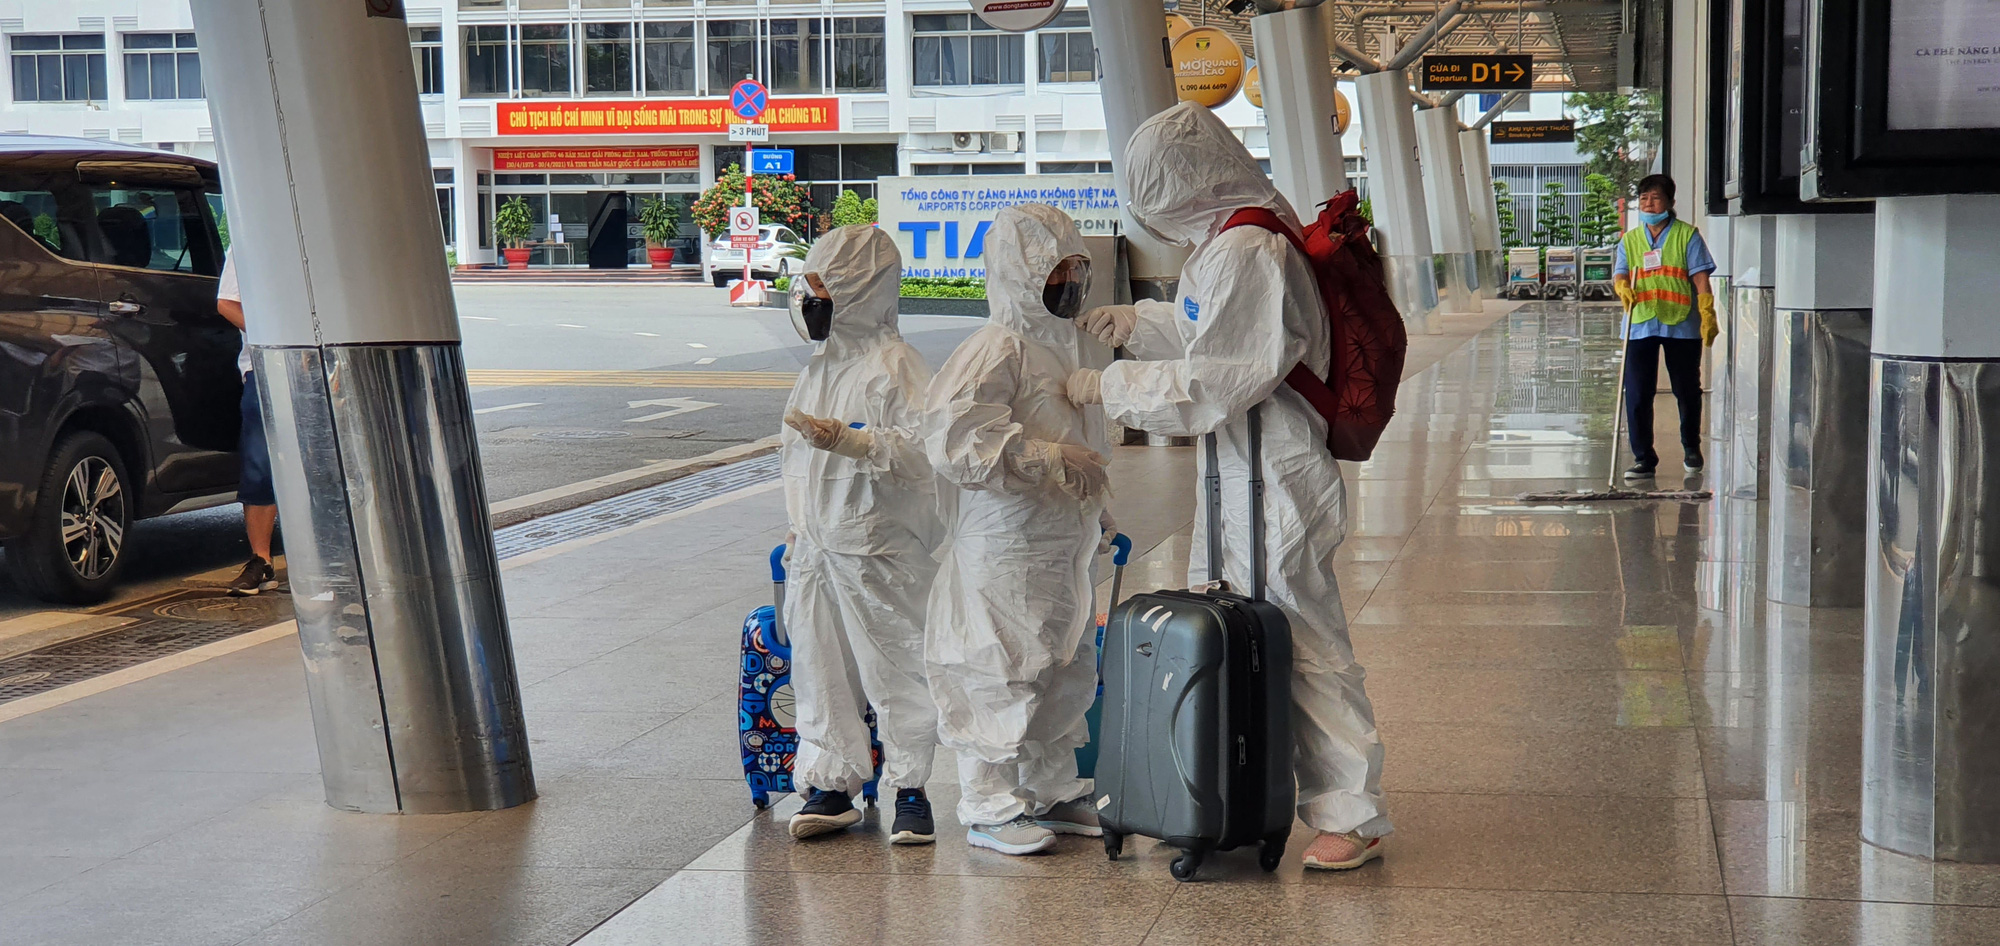 A group of passengers wear protective gears from top to toe at Tan Son Nhat International Airport in Ho Chi Minh City, July 1, 2021. Photo: C. Trung / Tuoi Tre